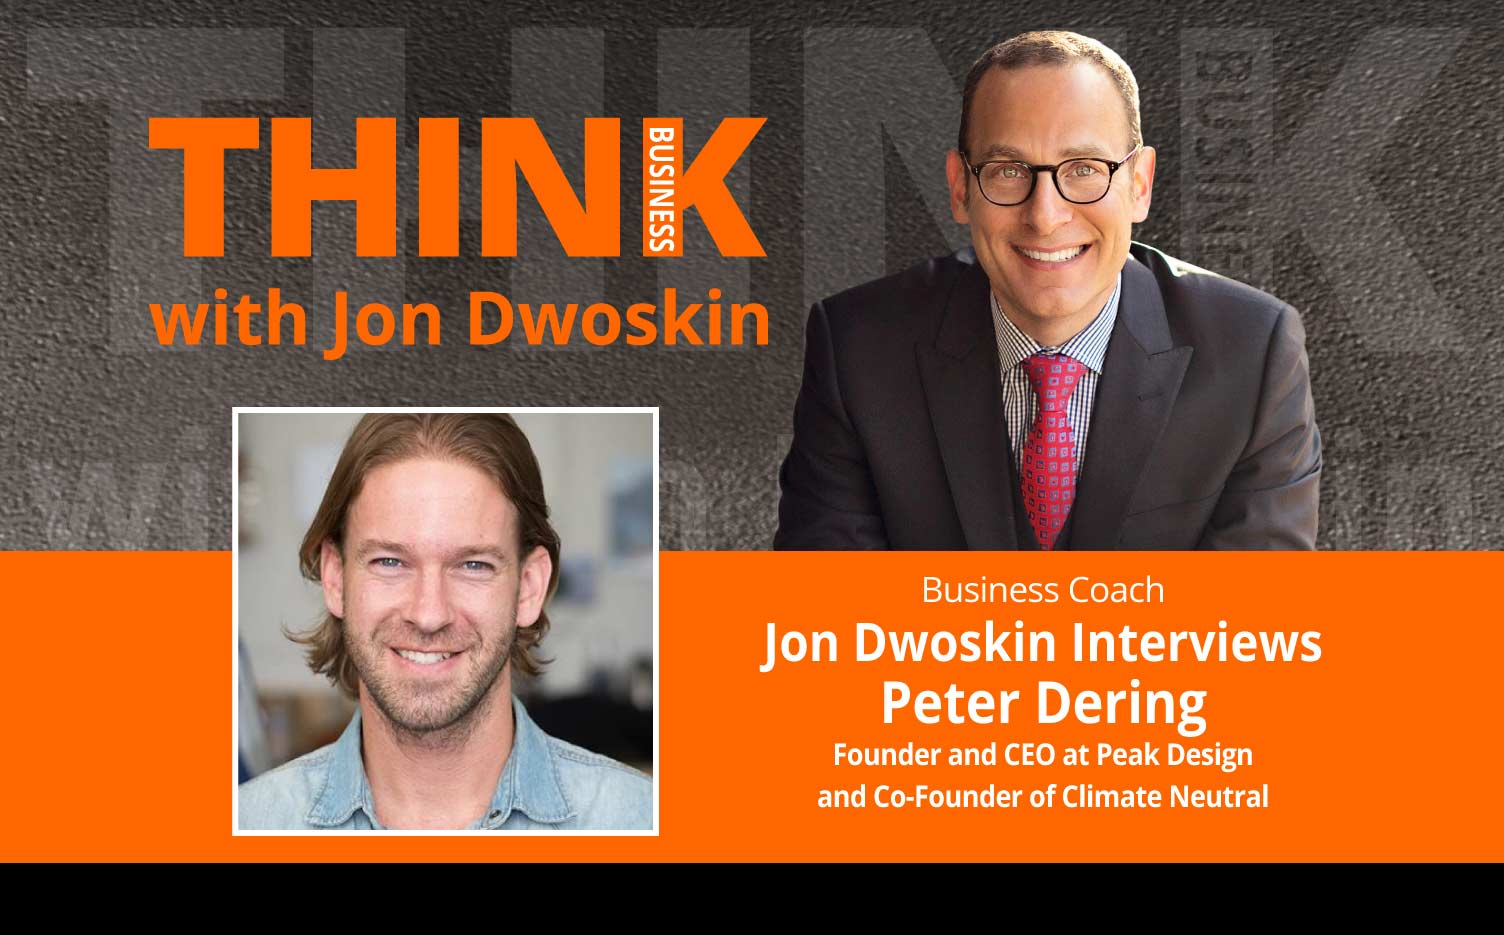 THINK Business Podcast: Jon Dwoskin Interviews Peter Dering, Founder and CEO at Peak Design and Co-Founder of Climate Neutral